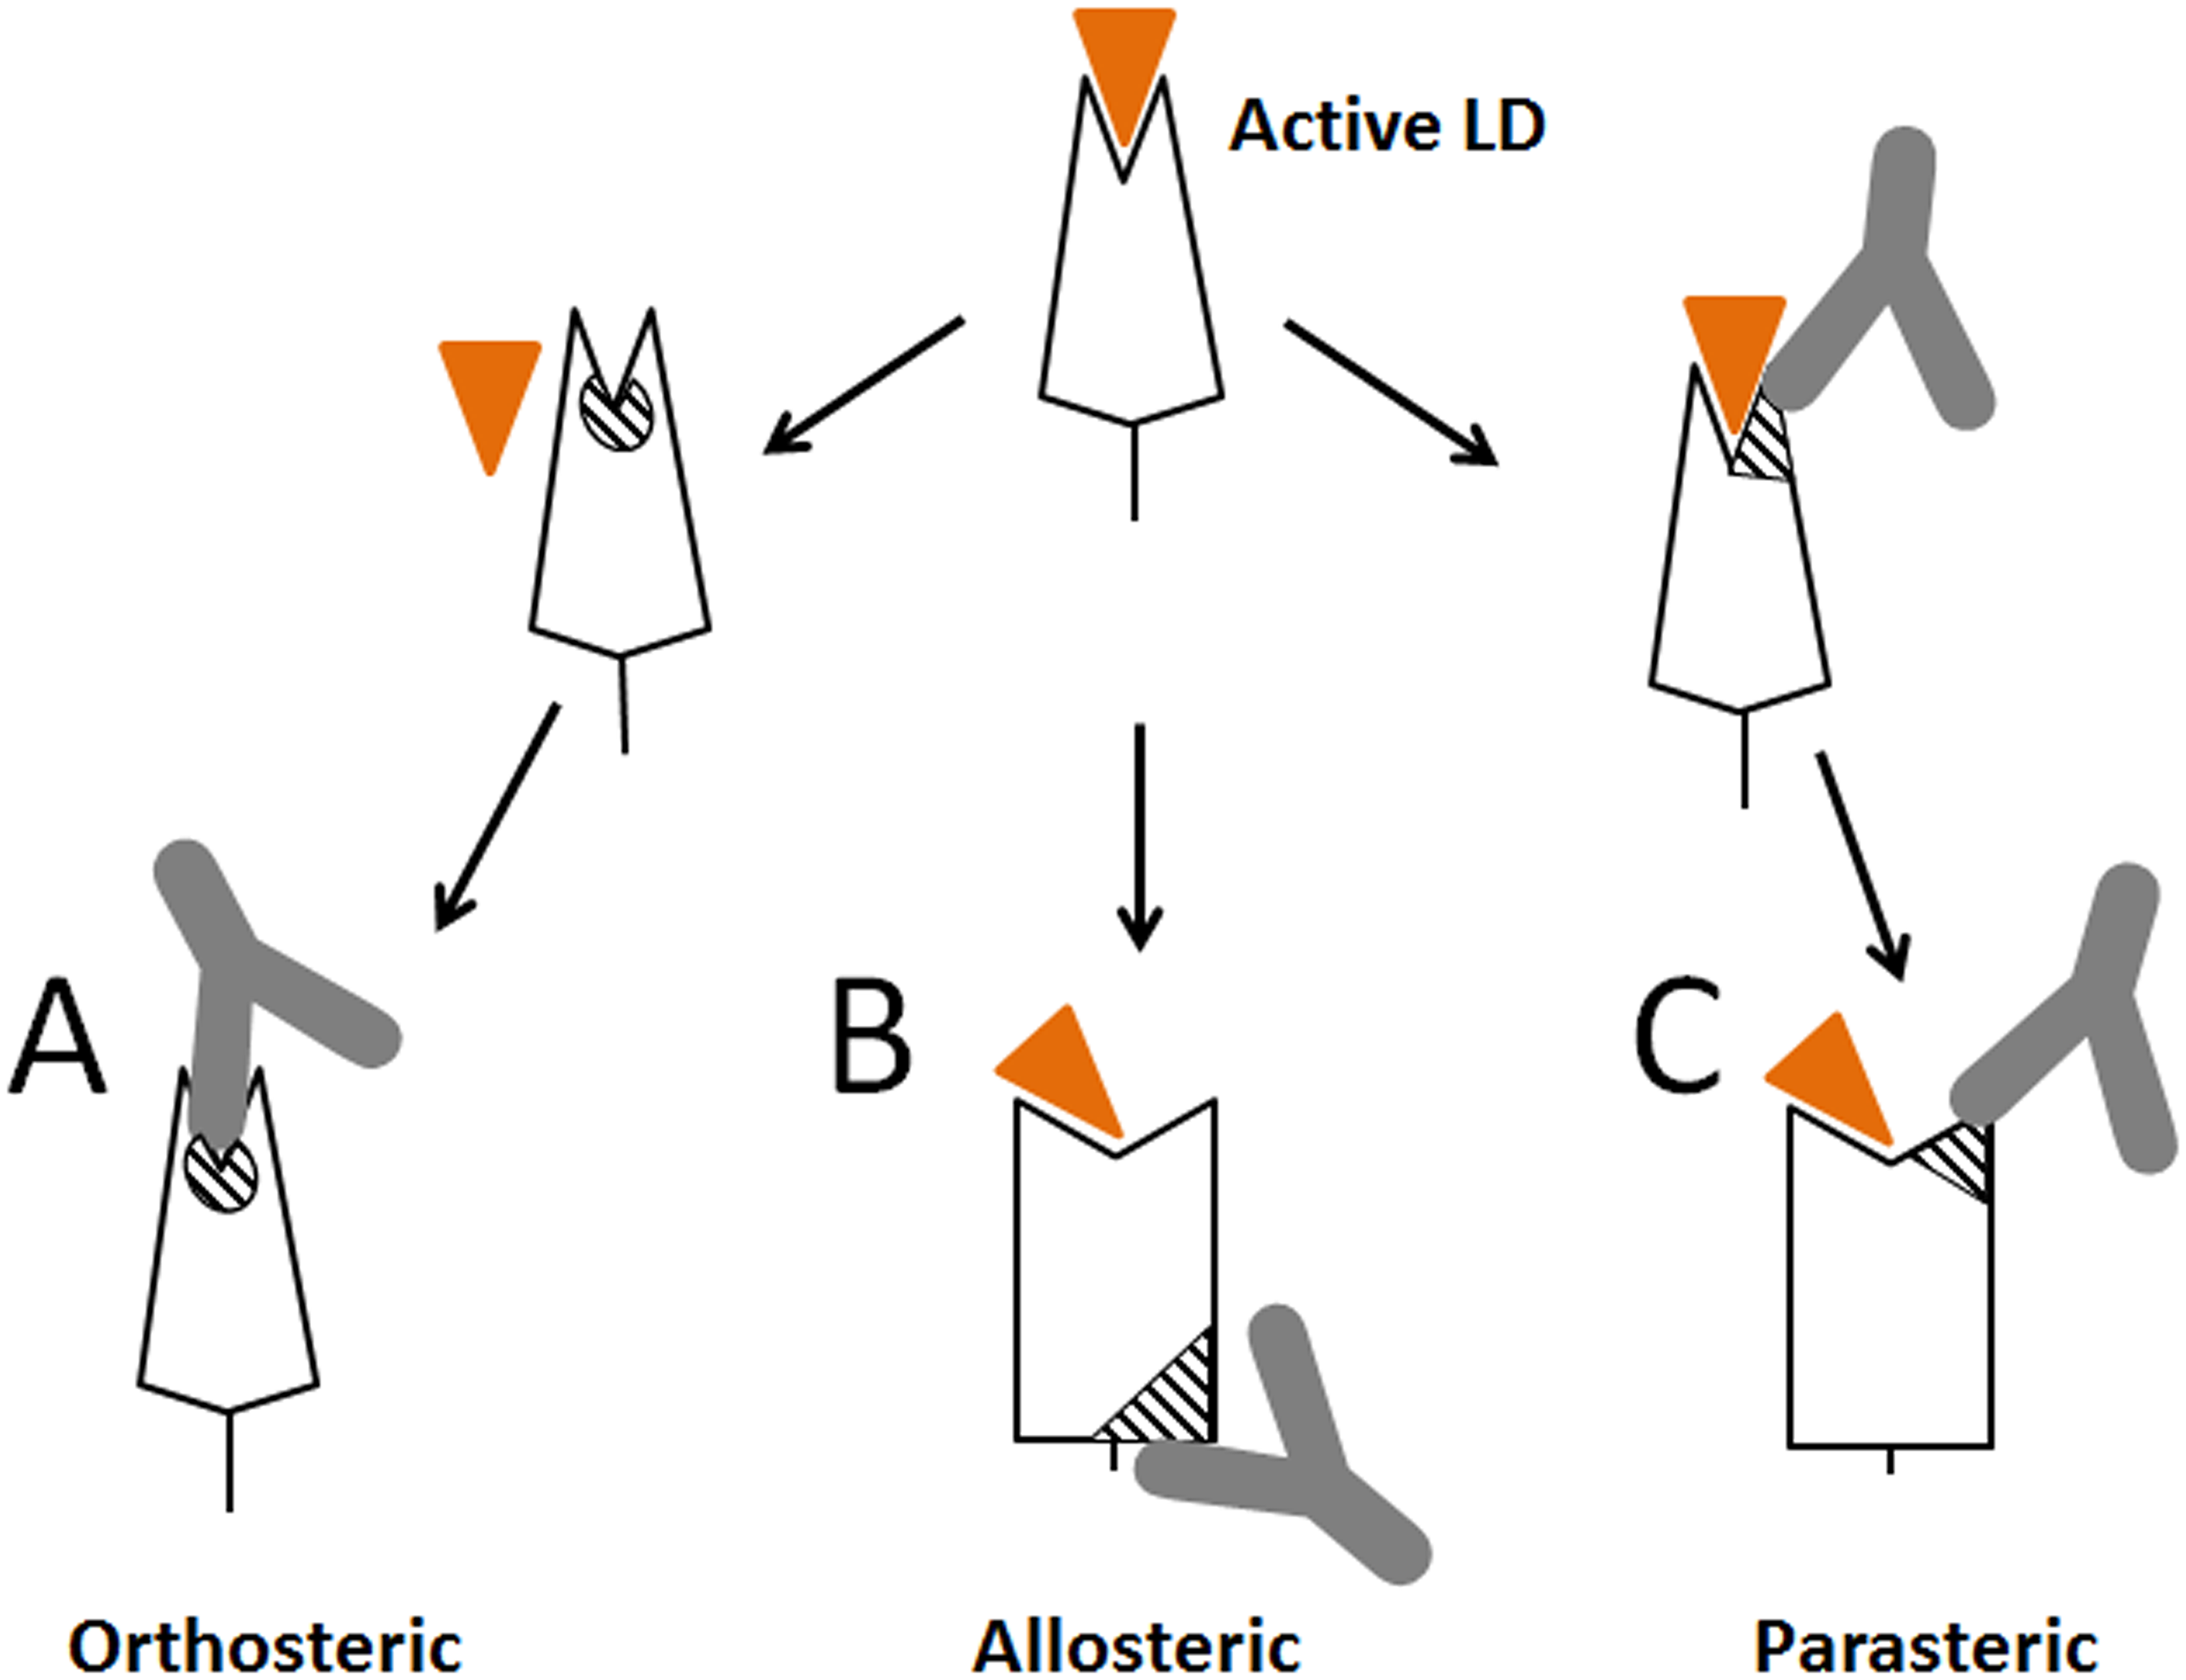 Schematic representation of different types of antibodies against lectin domain (LD) of FimH.